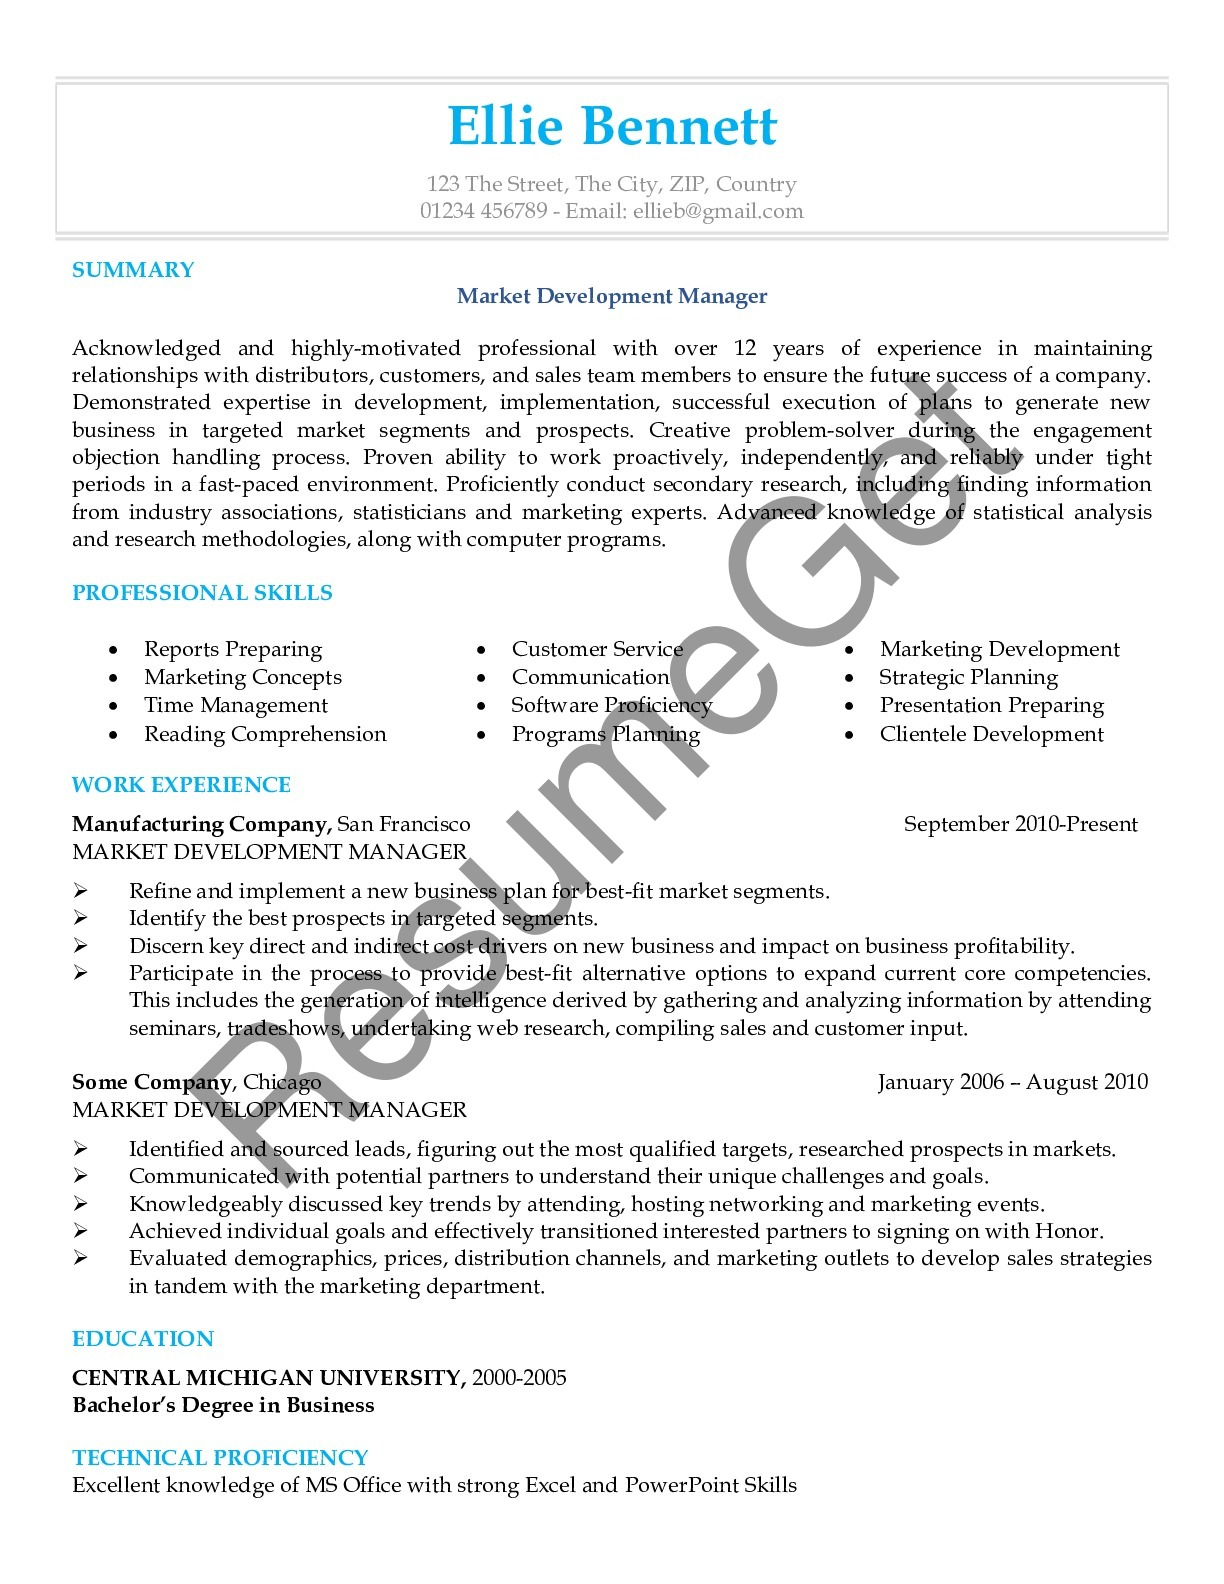 Resume for Marketing Professional